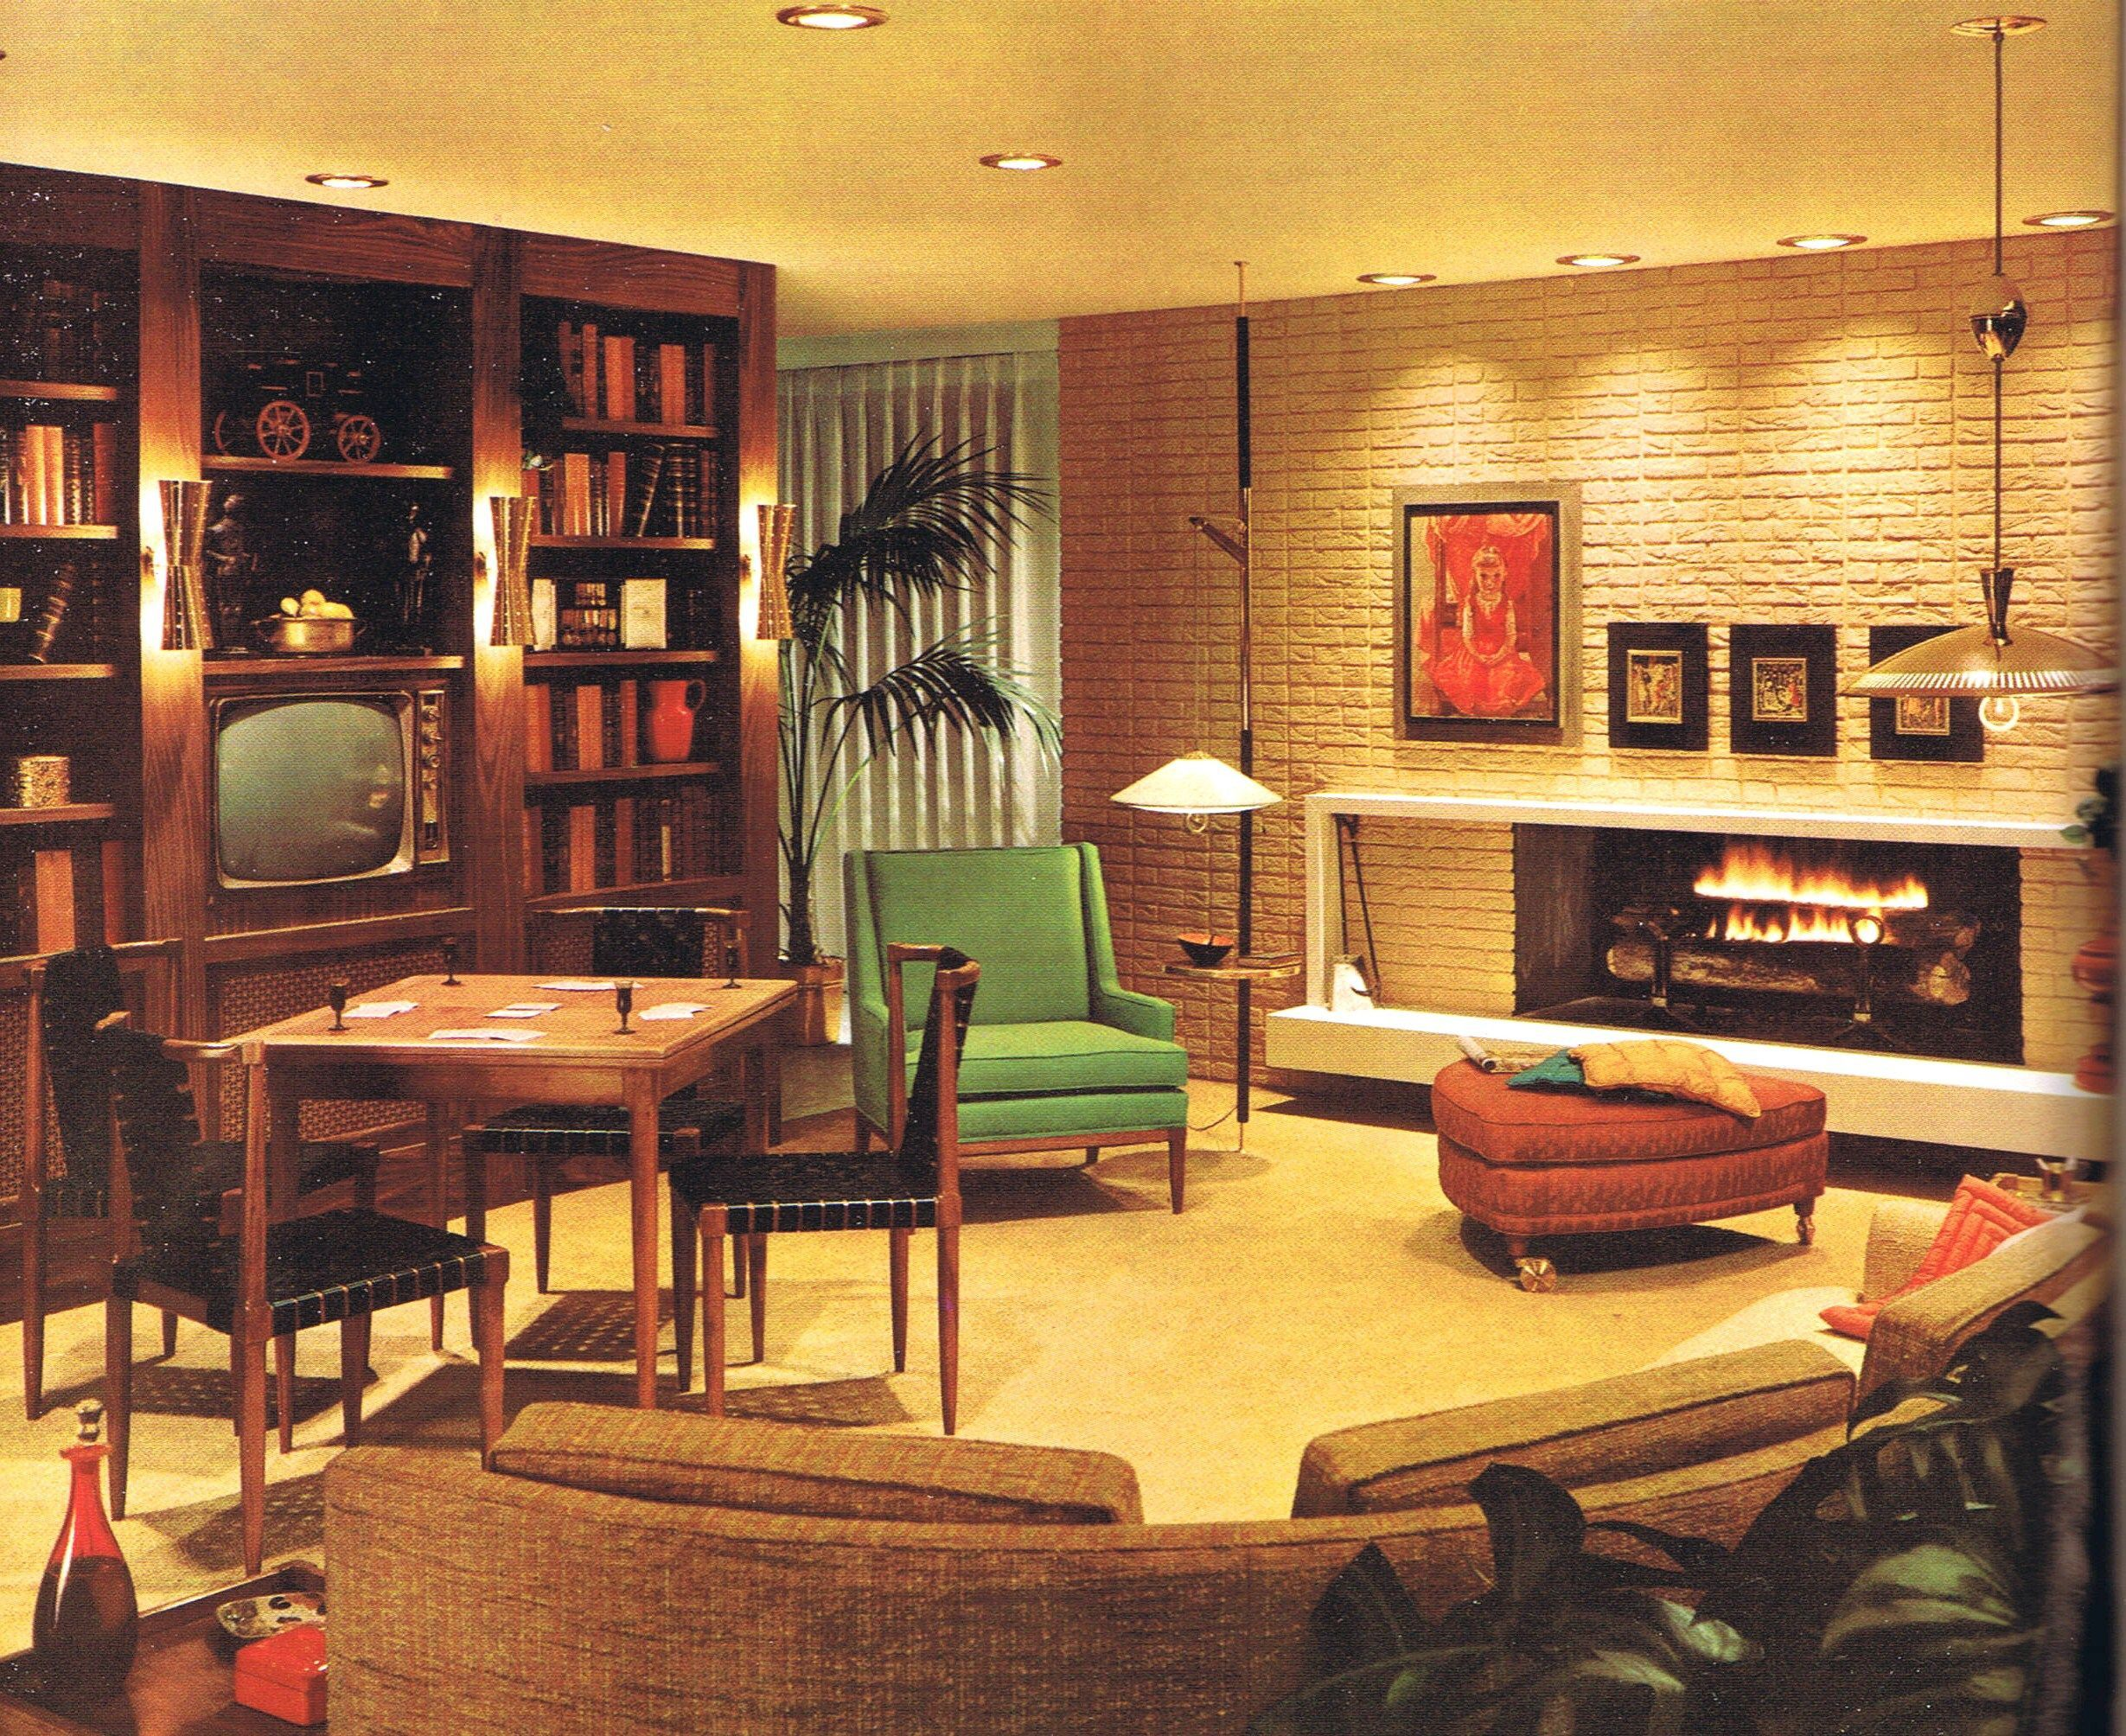 Pin on The Odd Couple - Scenic Inspiration